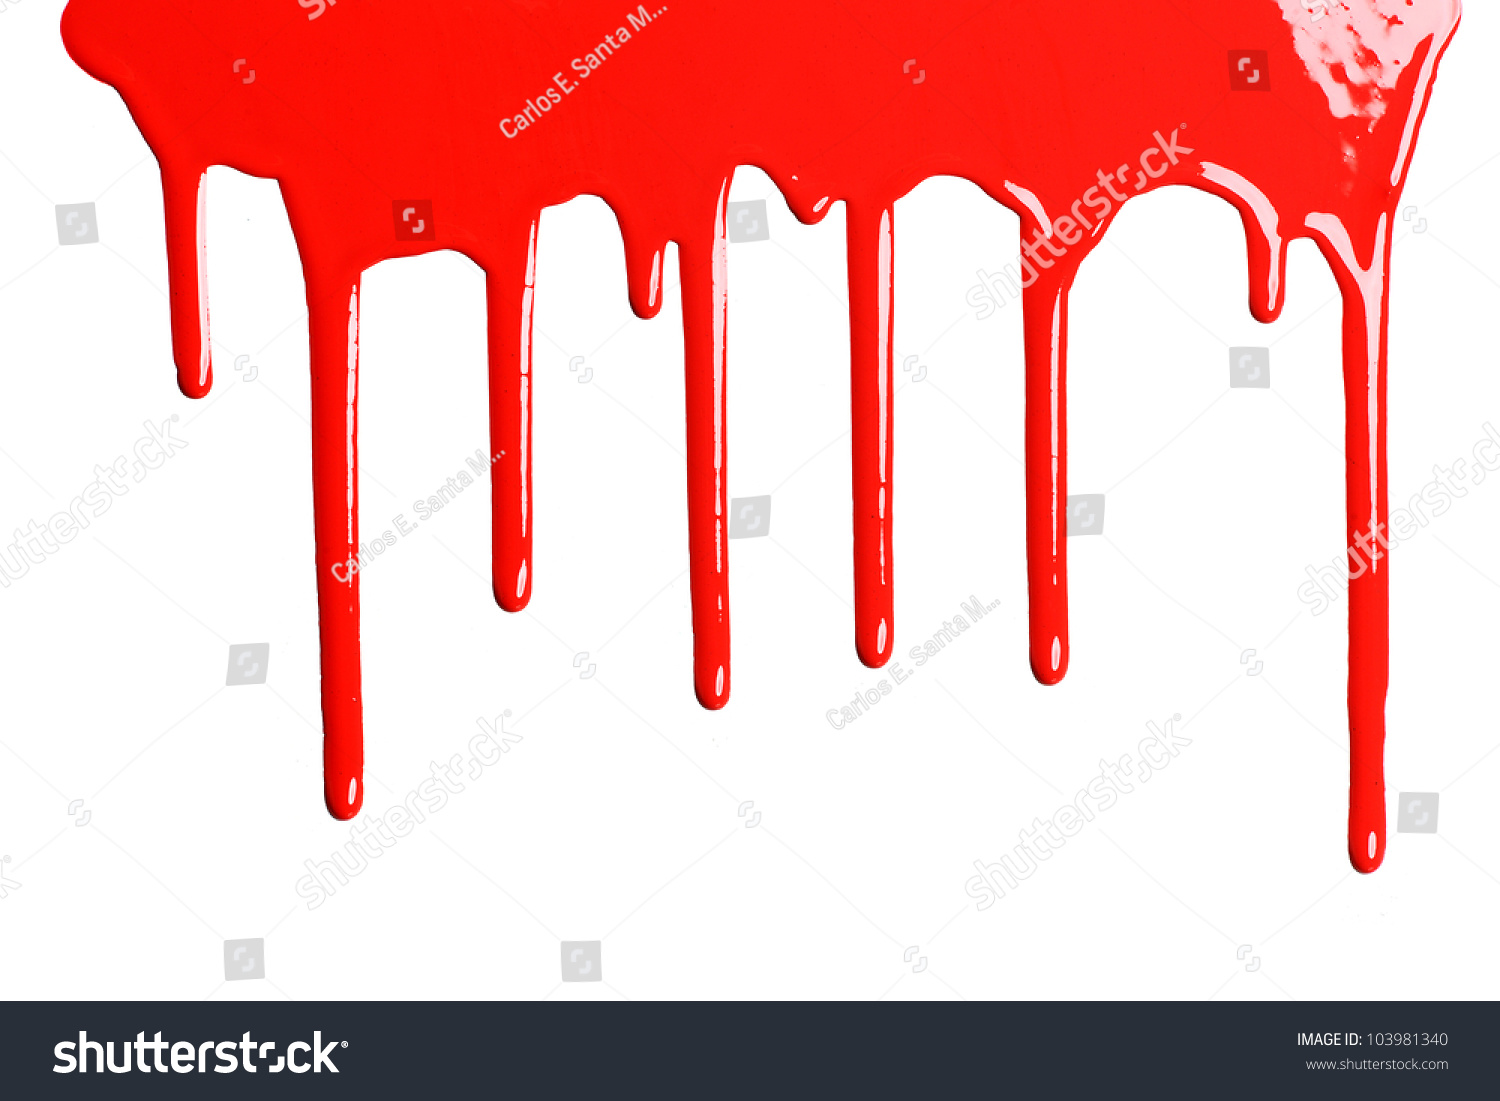 Red Dripping Paint Against White Background Stock Photo ...